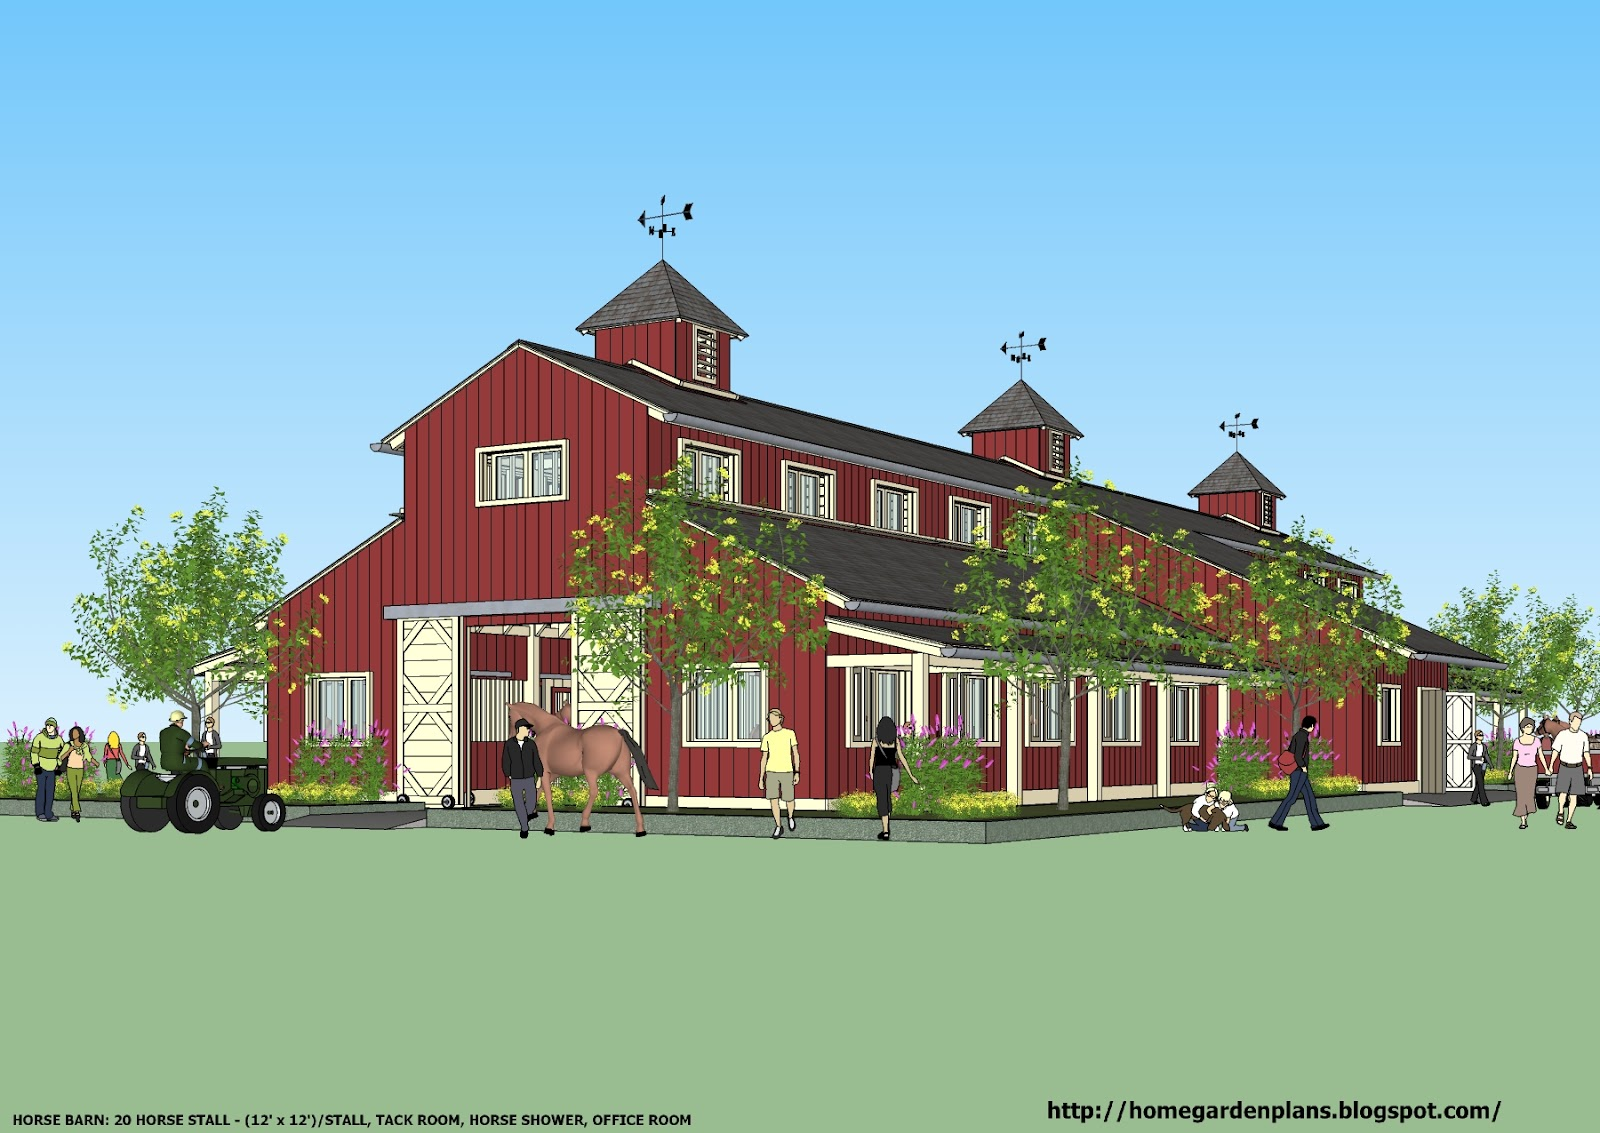 Shed row horse barn plans shedbra Barn styles plans